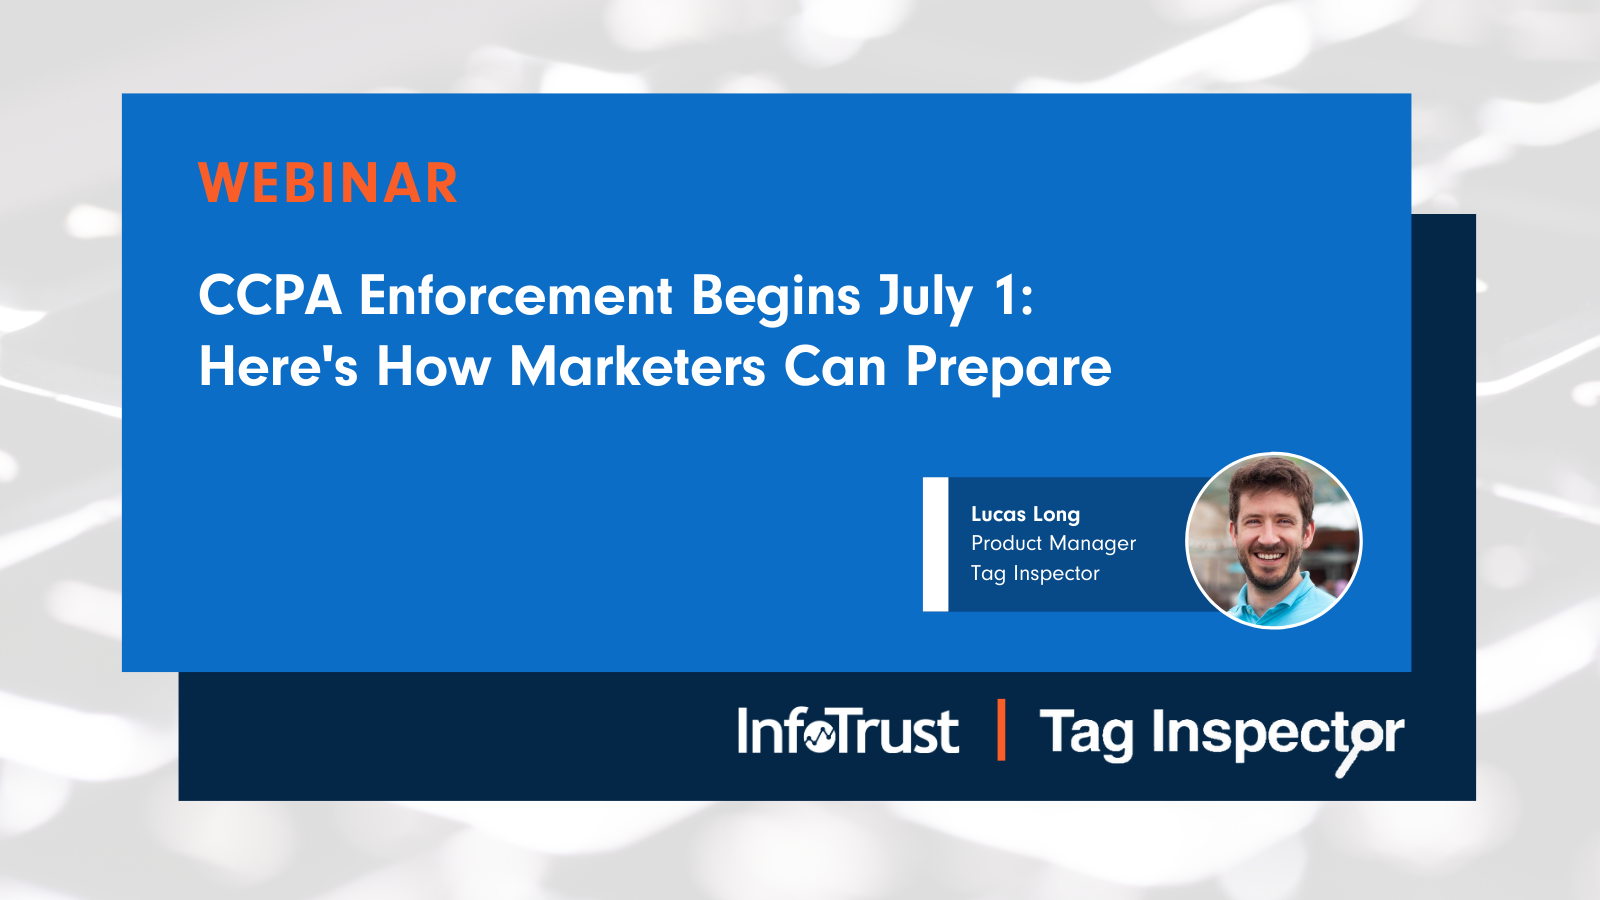 CCPA Enforcement Begins July 1: Here's How Marketers Can Prepare